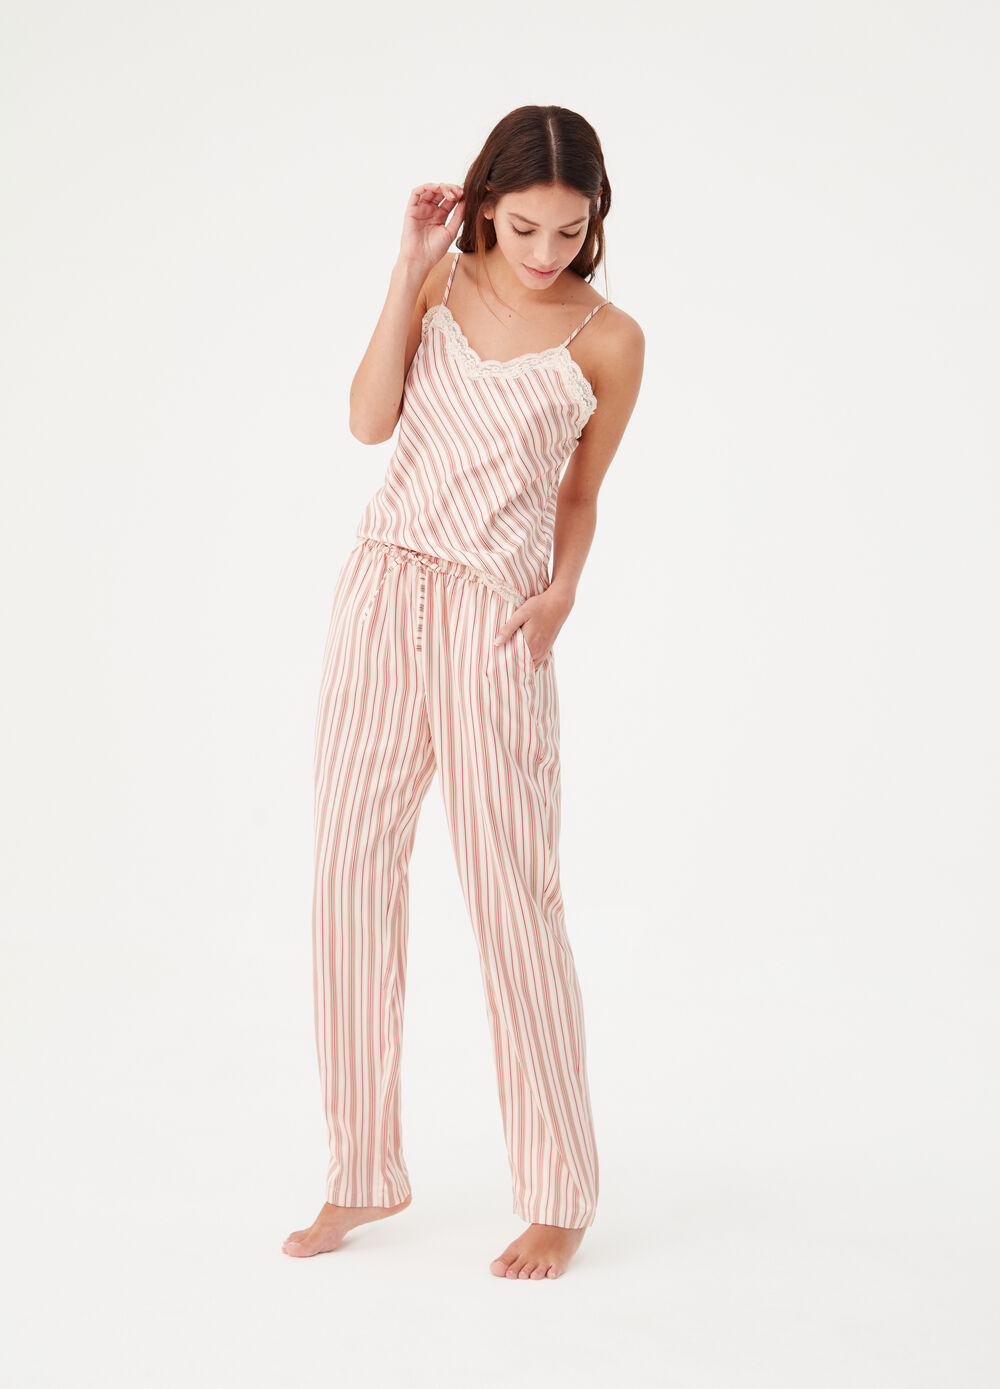 Satin pyjama trousers with pockets